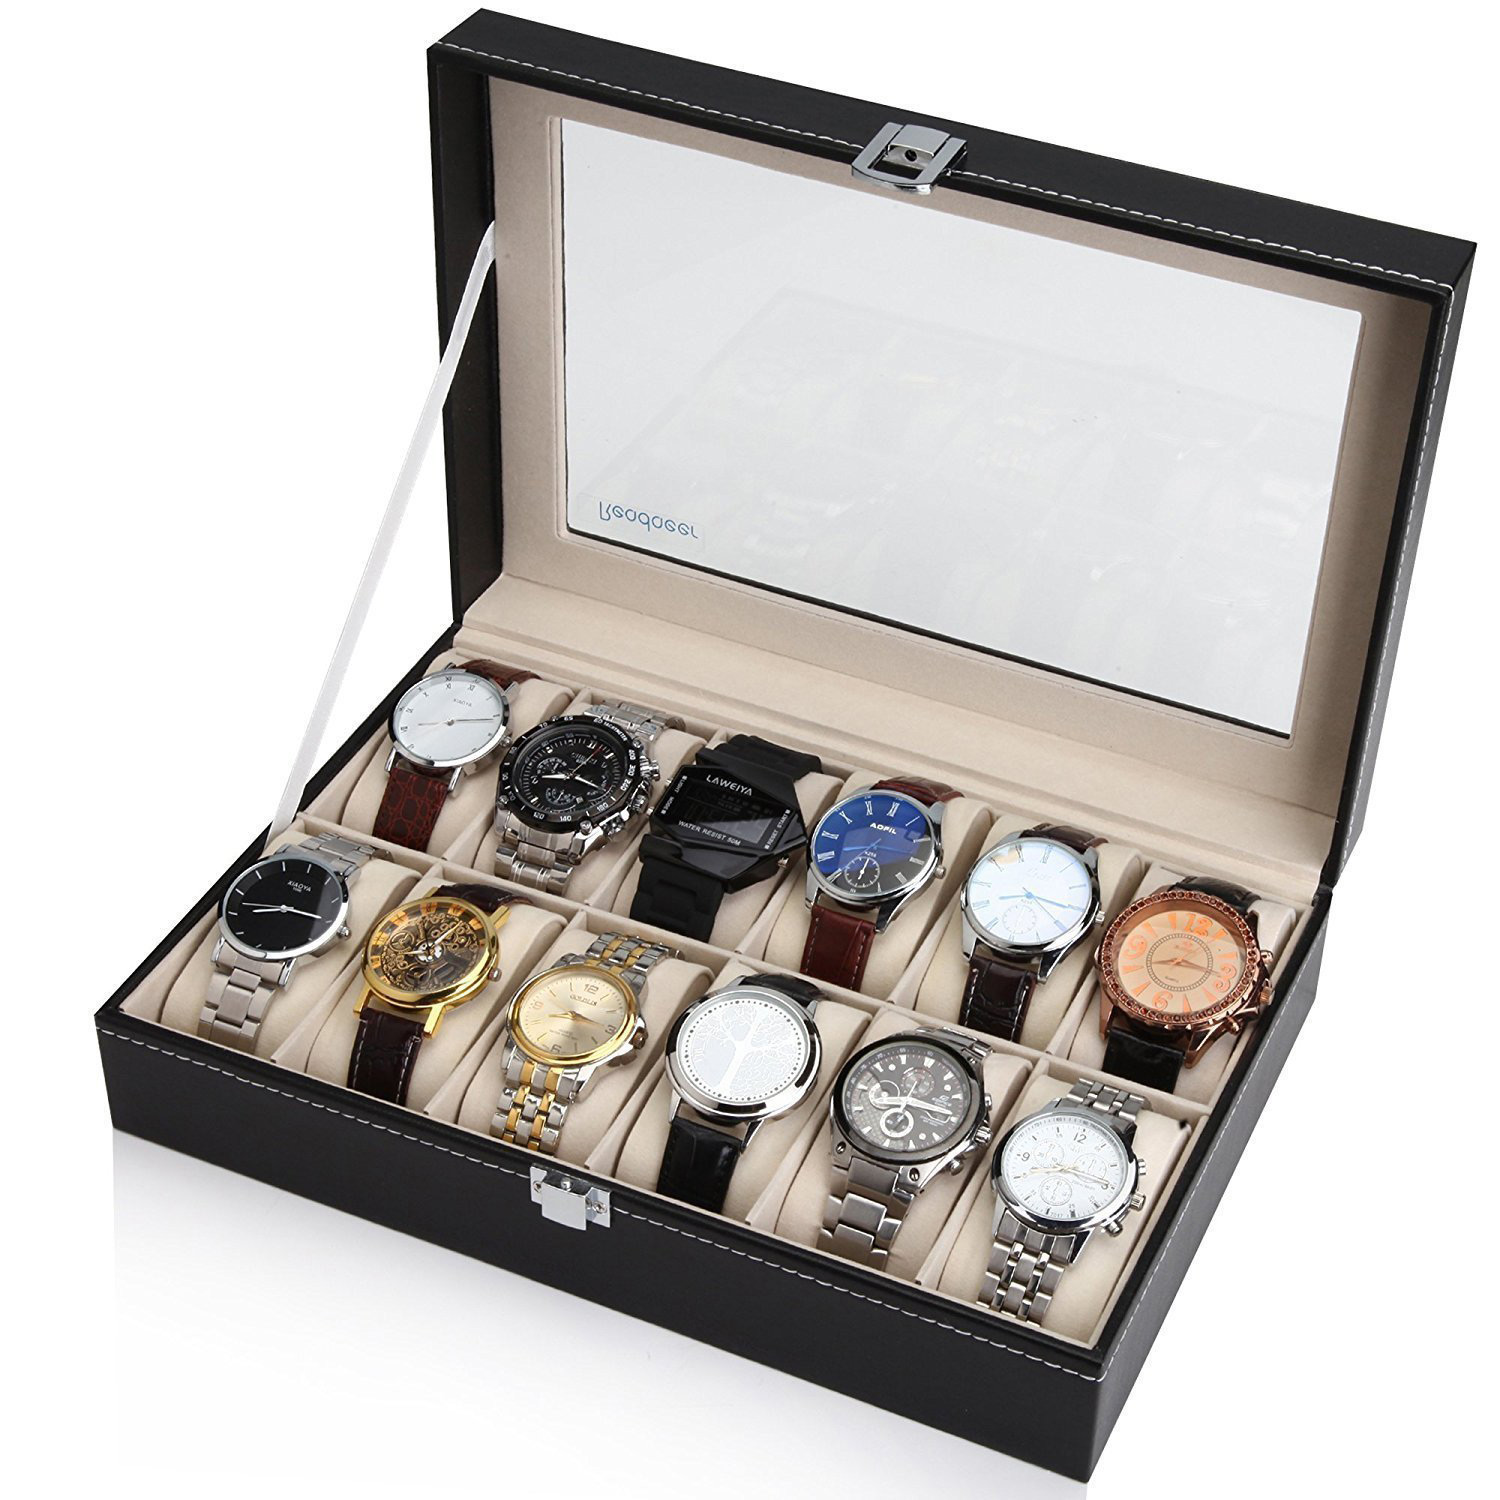 Compact 12 Slot Watch Display Holder Case with Glass Top